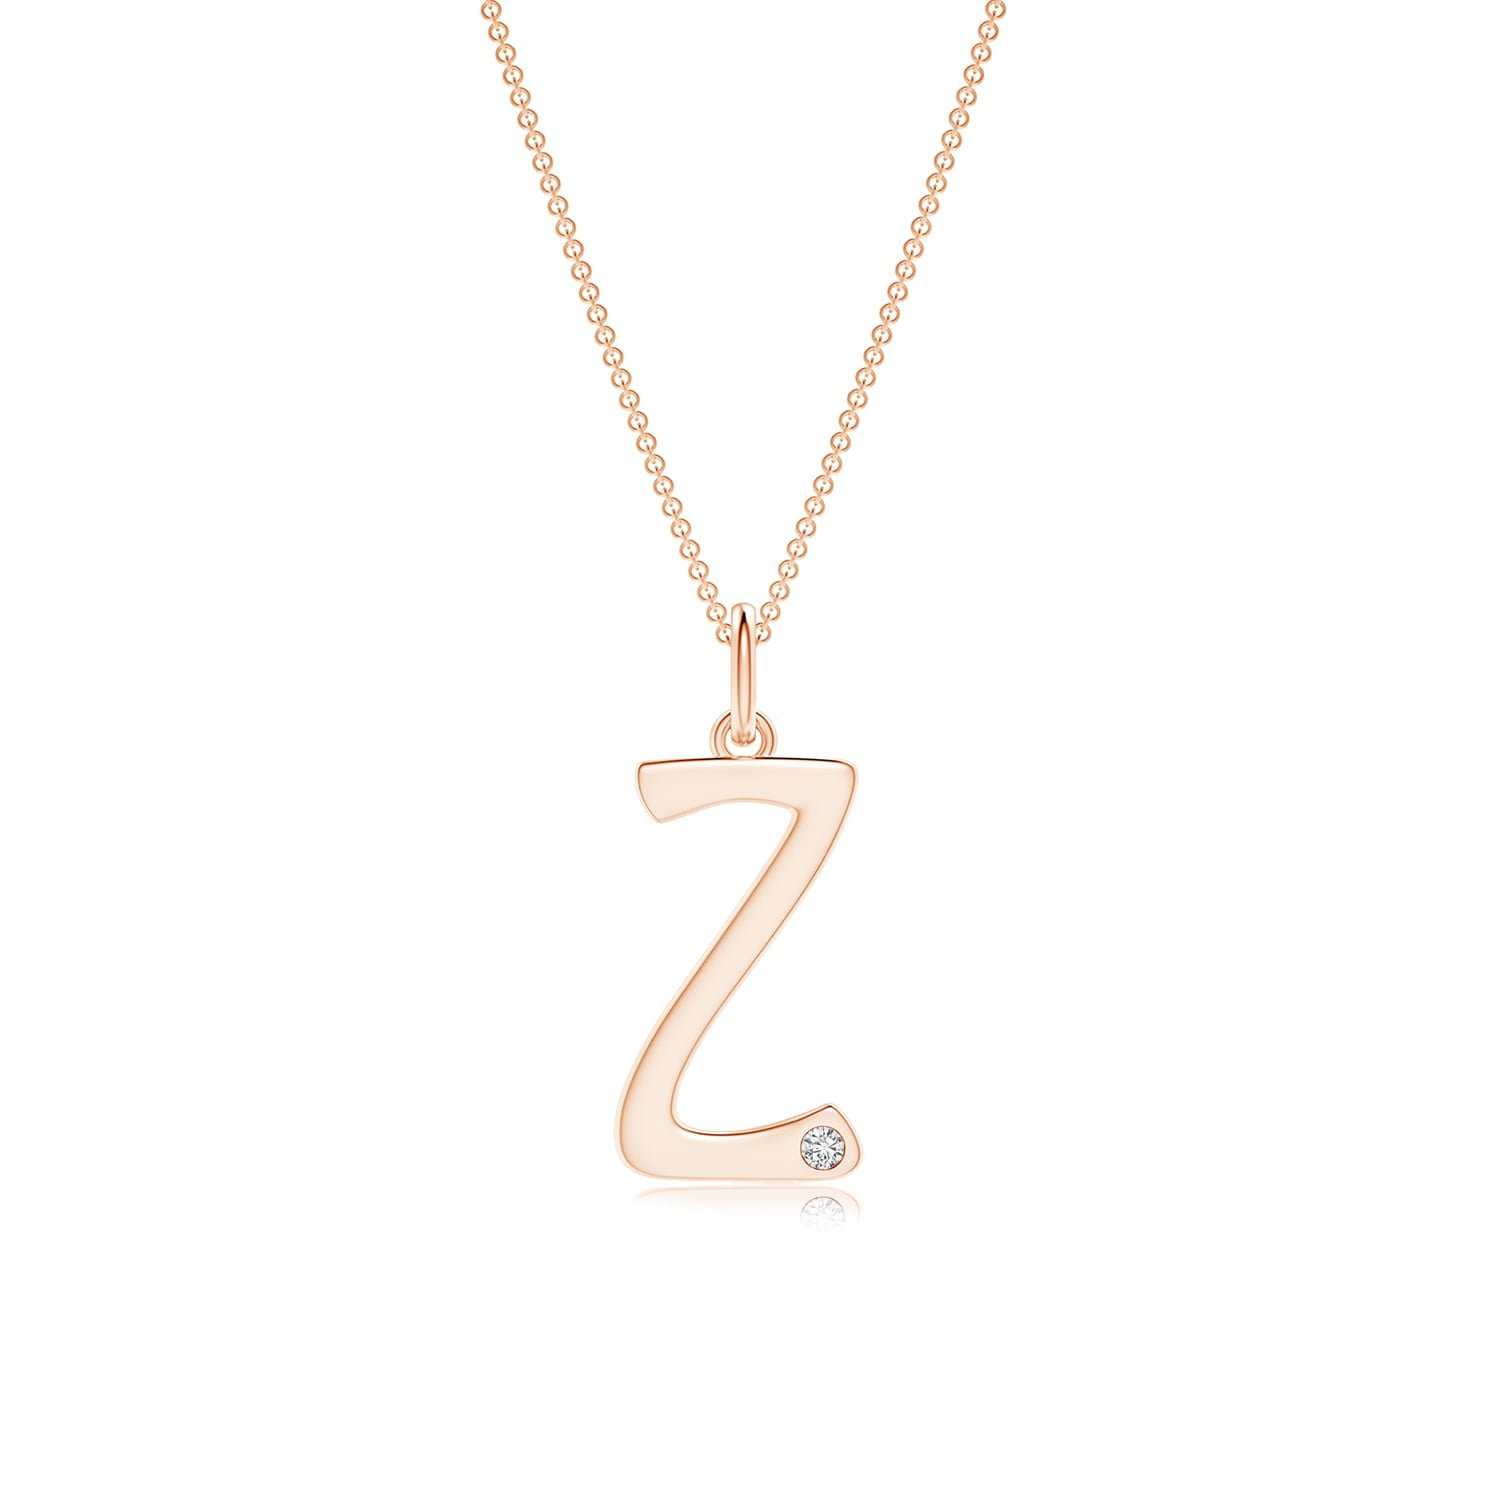 Color H, Clarity: SI2 Gypsy Set Diamond Capital Z Initial Pendant